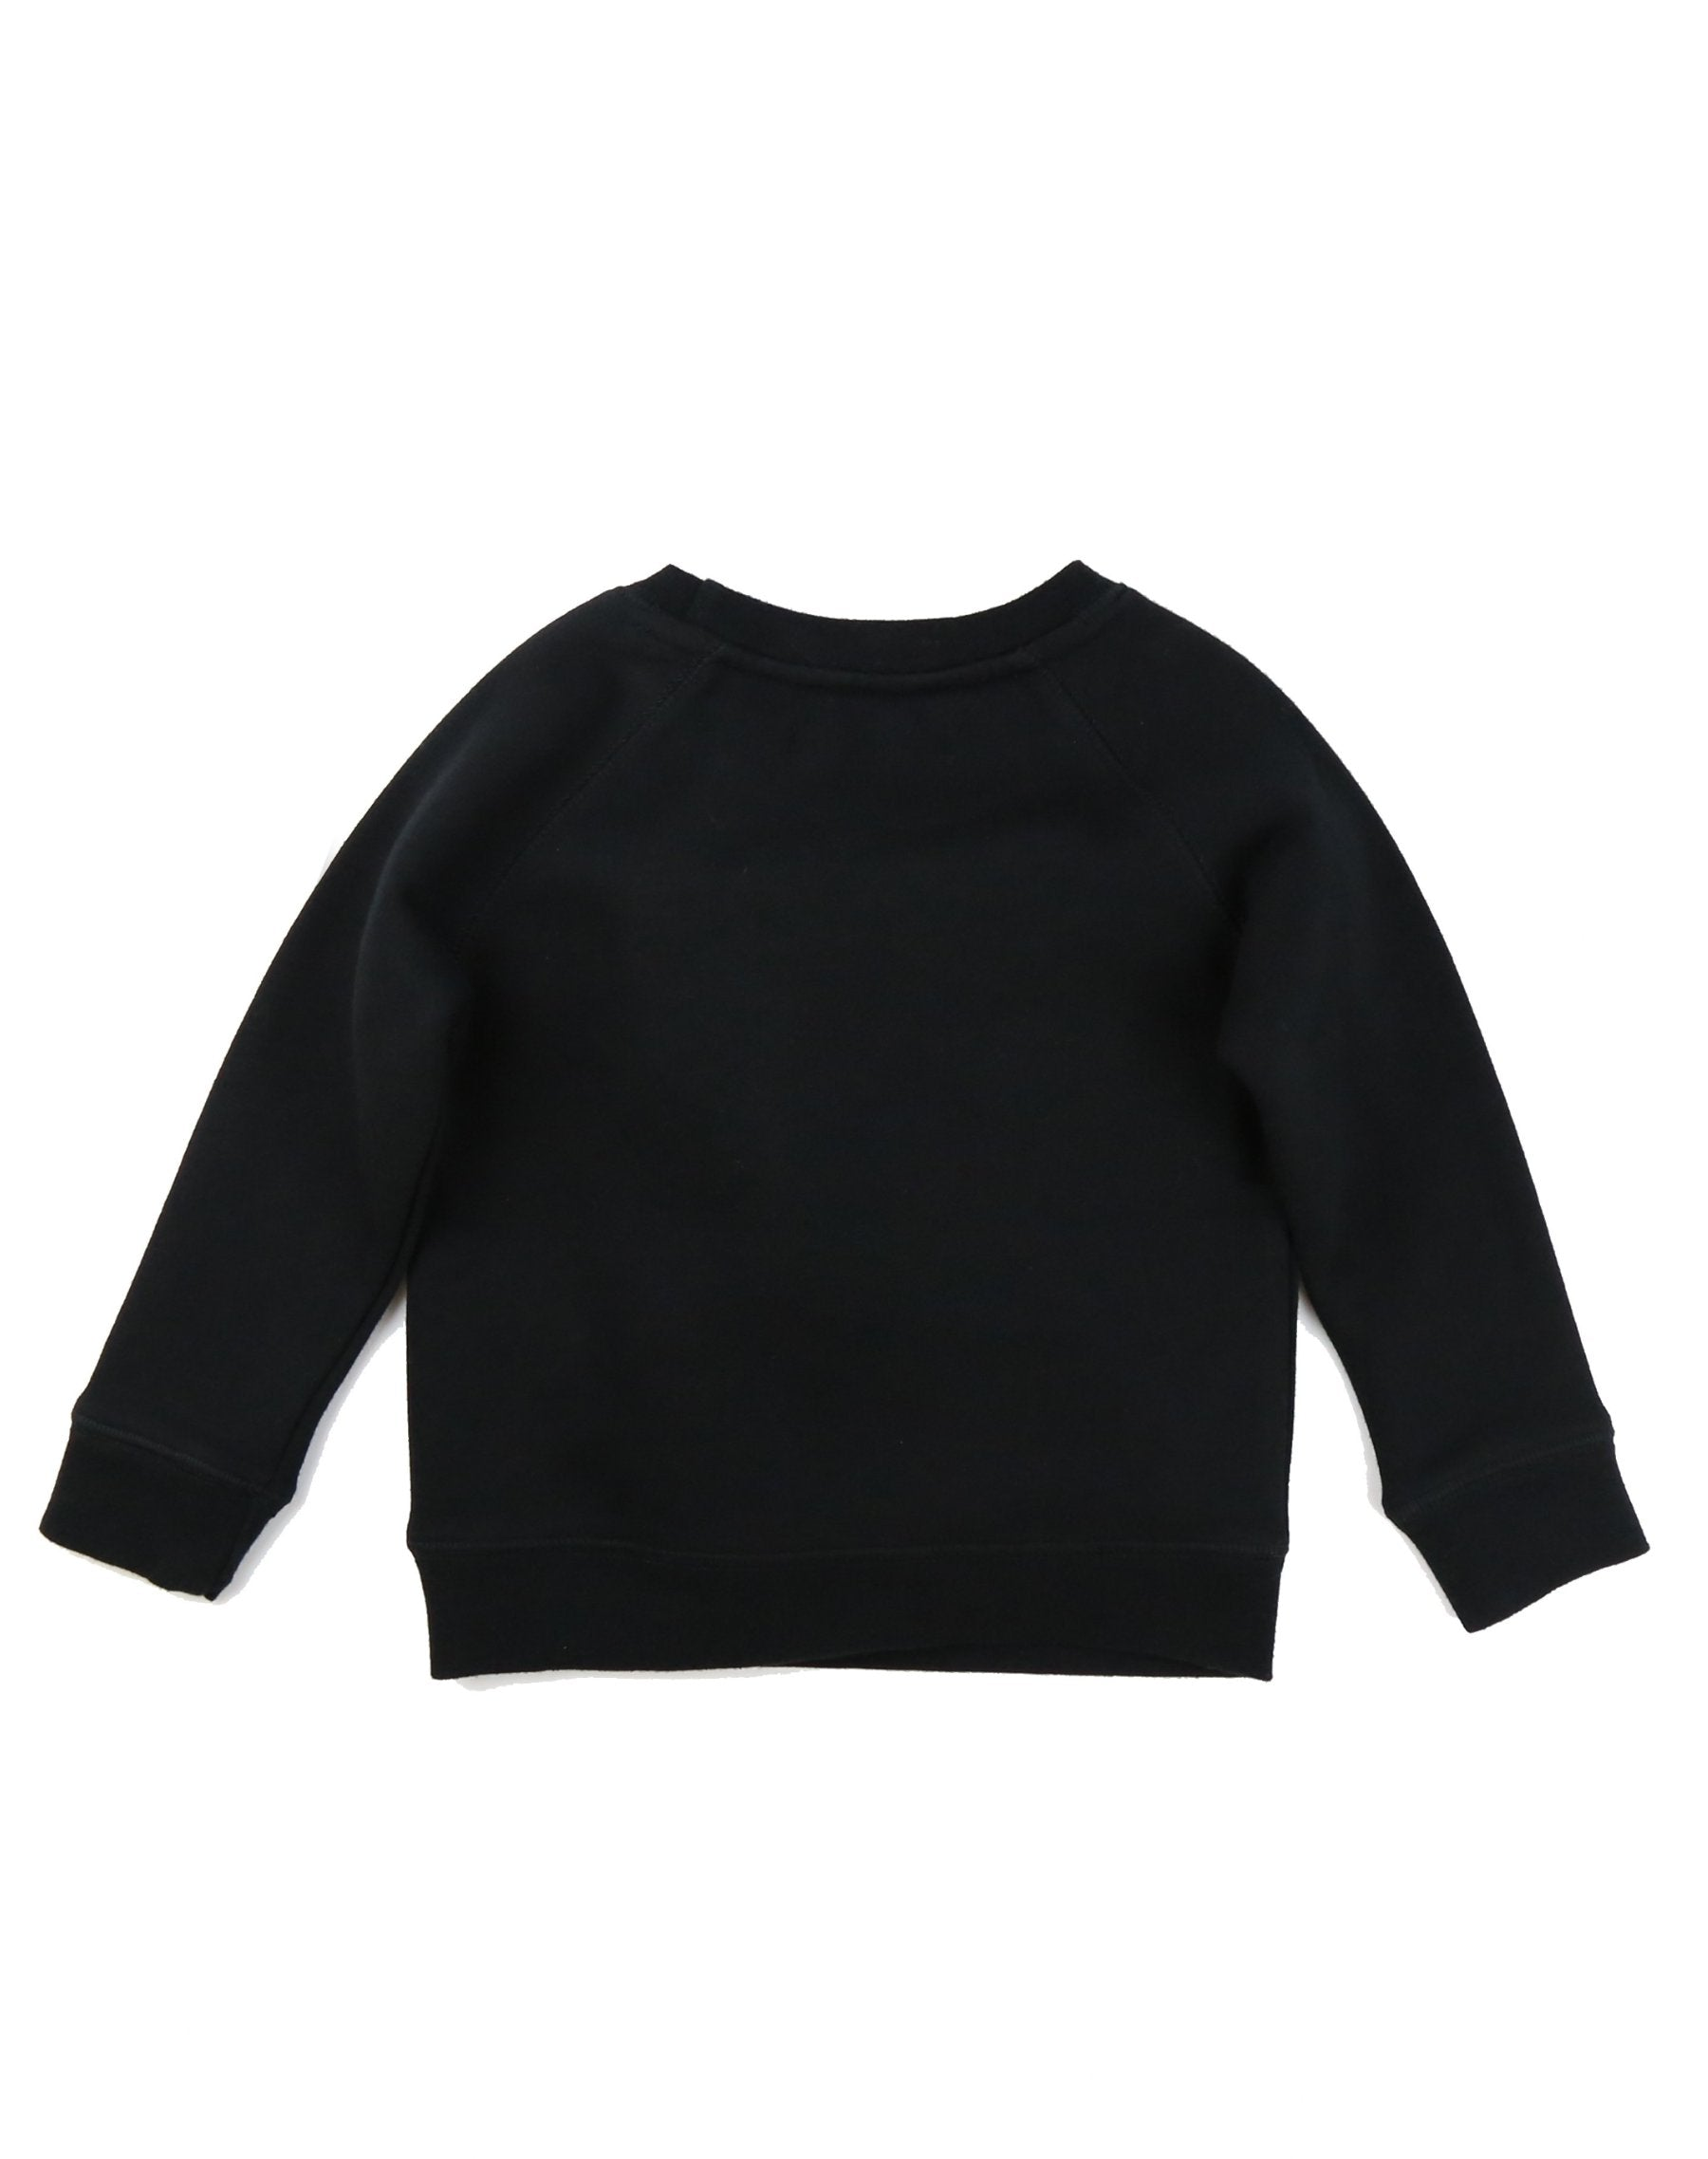 """BABES SUPPORTING BABES"" Little Babes Crew 